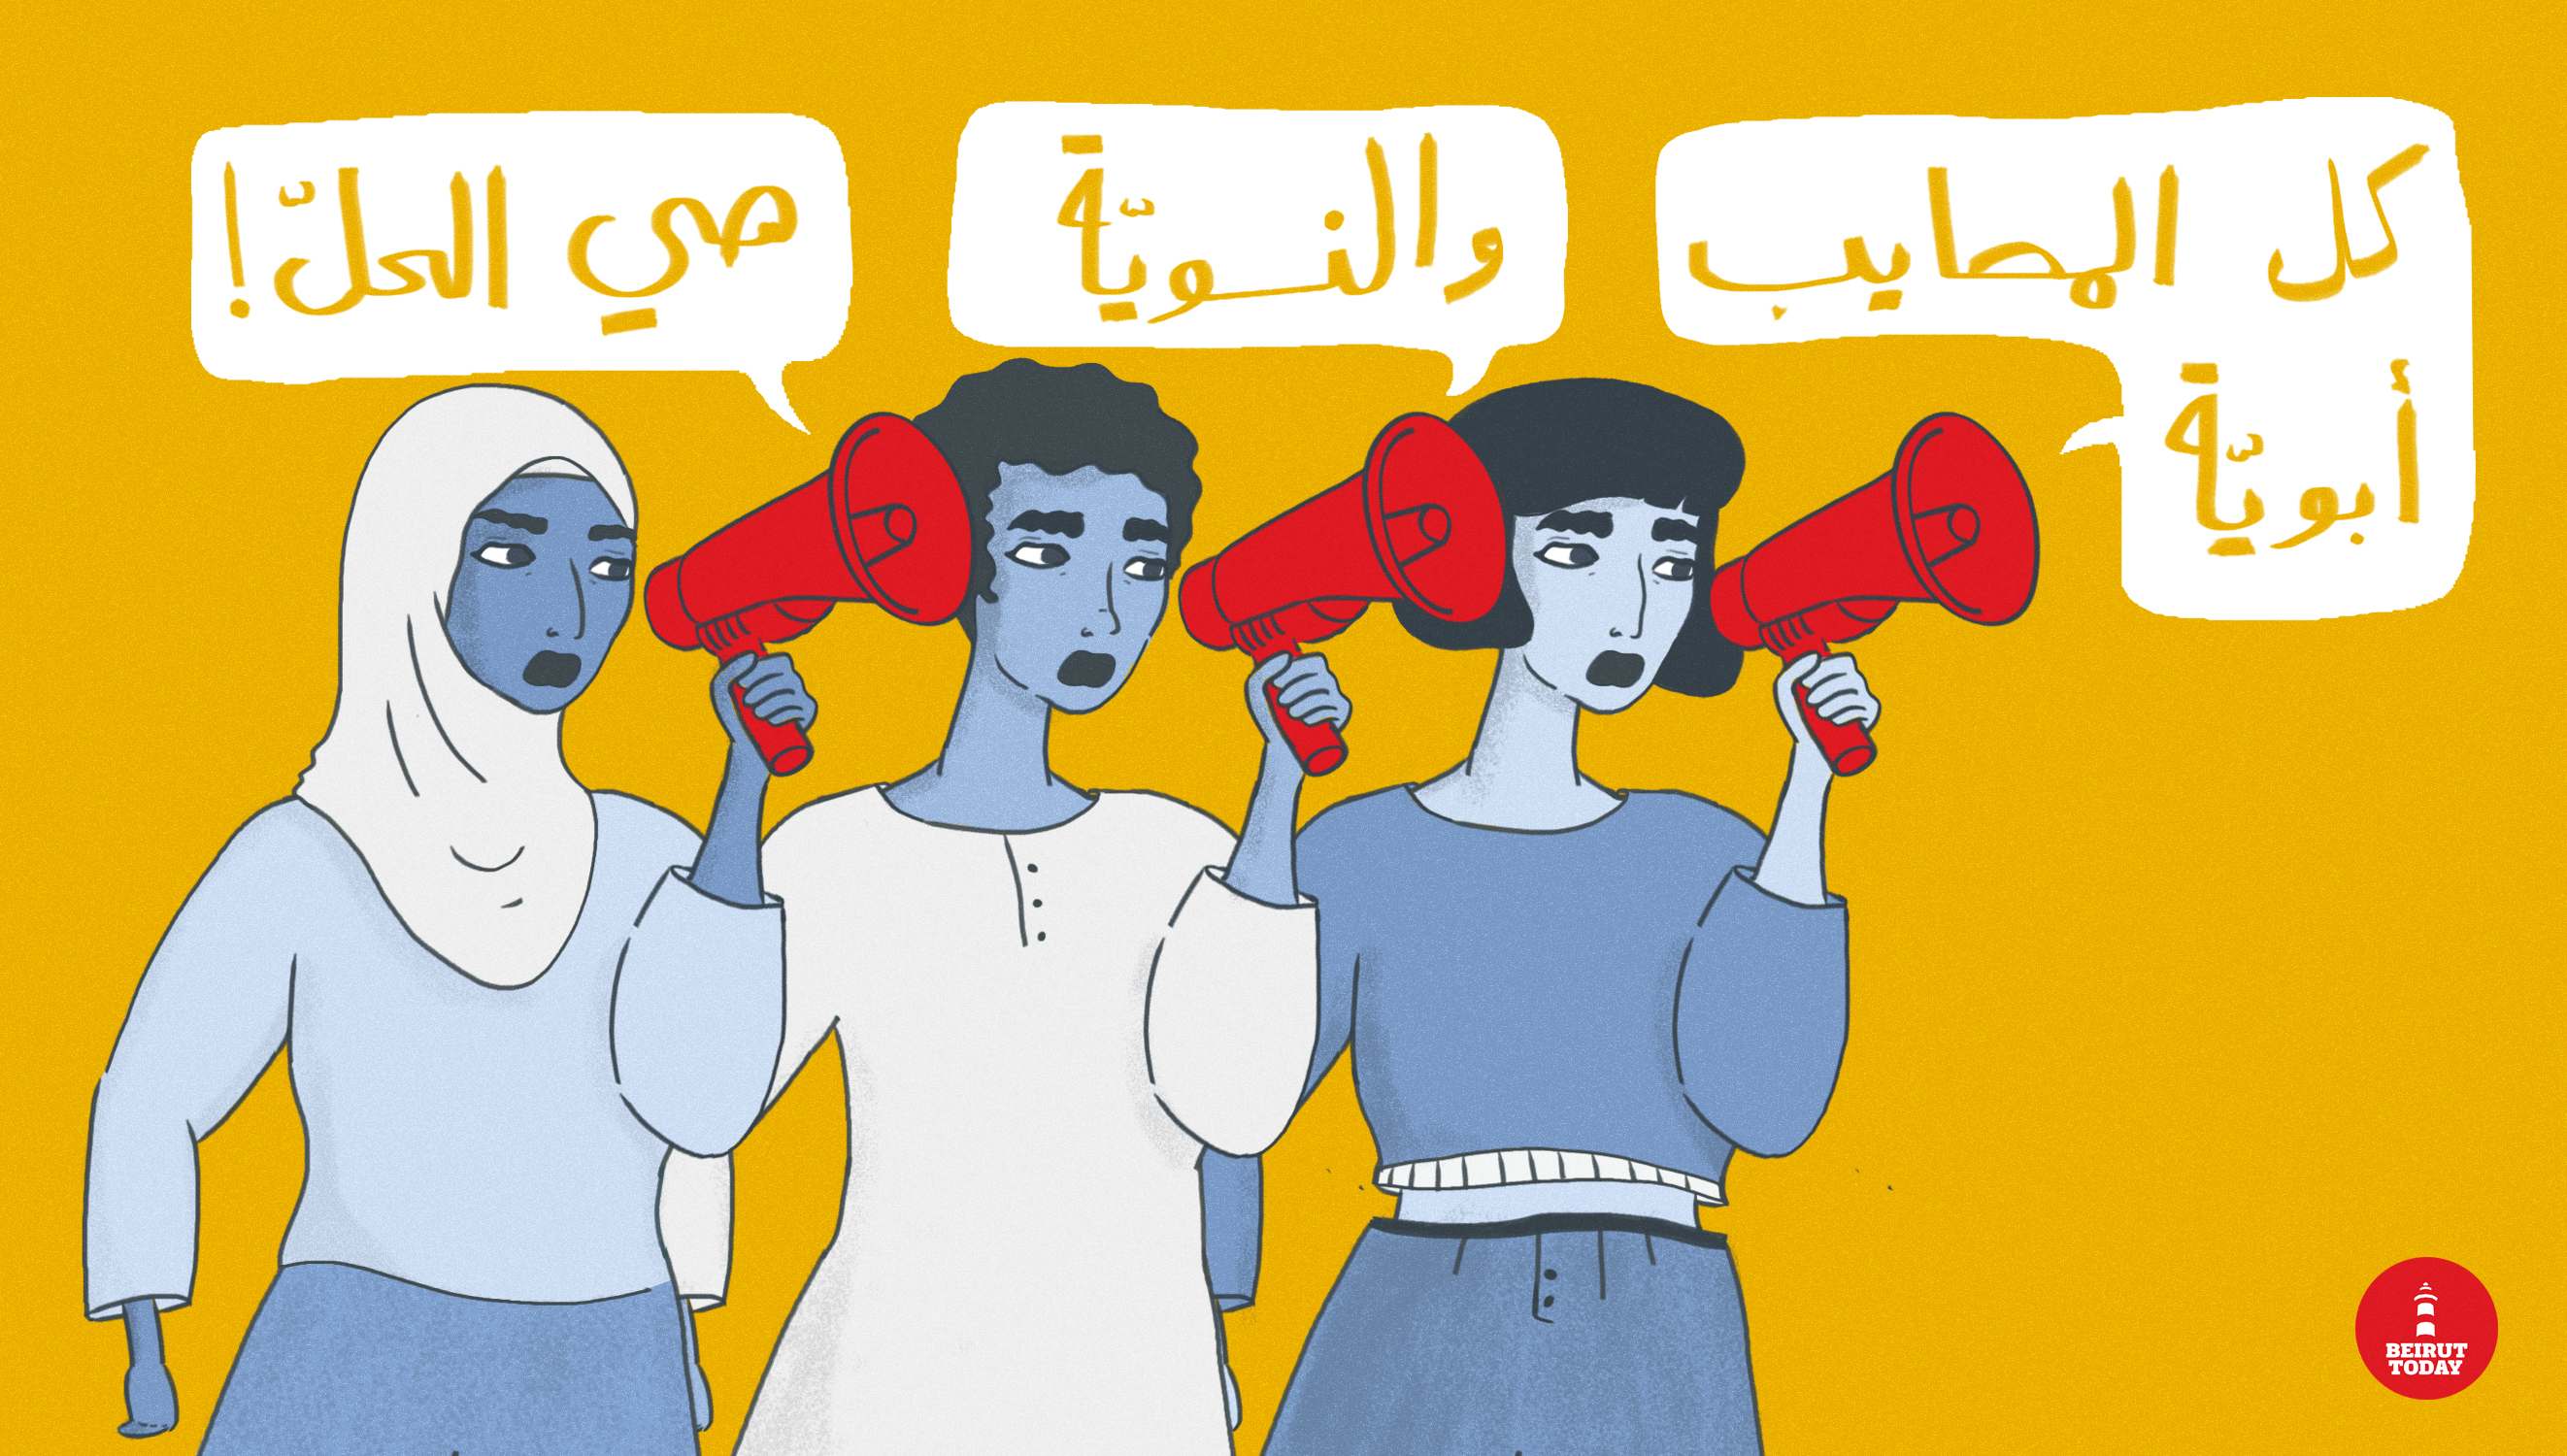 Illustration by Christina Atik showing three women holding megaphones. The first woman, with medium-length black hair and a crop top is saying